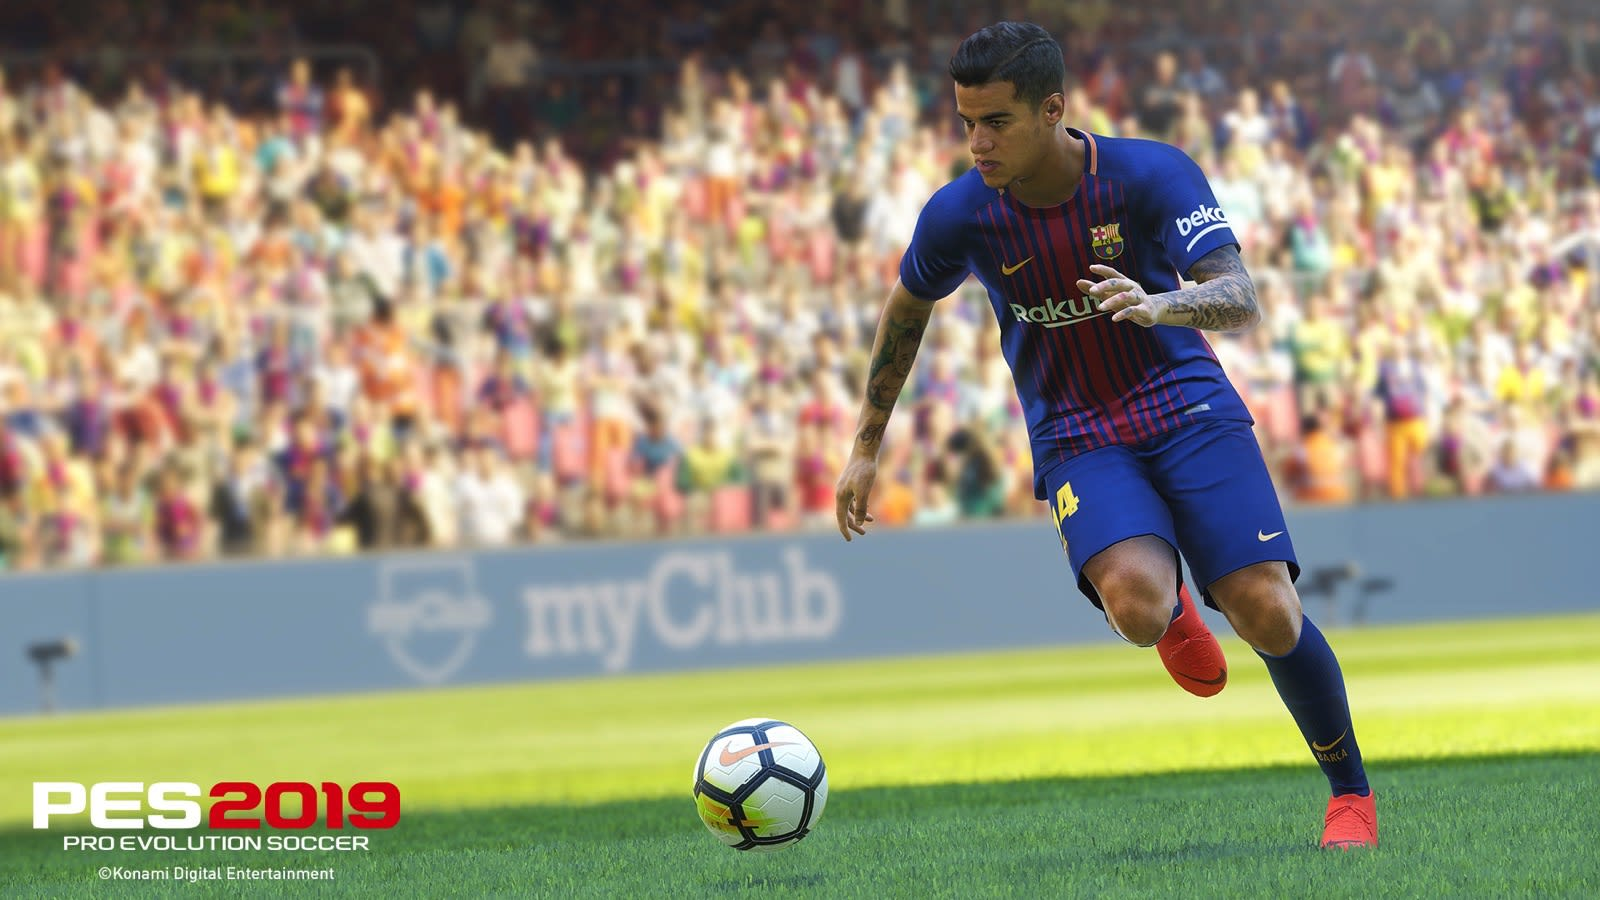 PES 2019: Three generations of pro players battle it out at